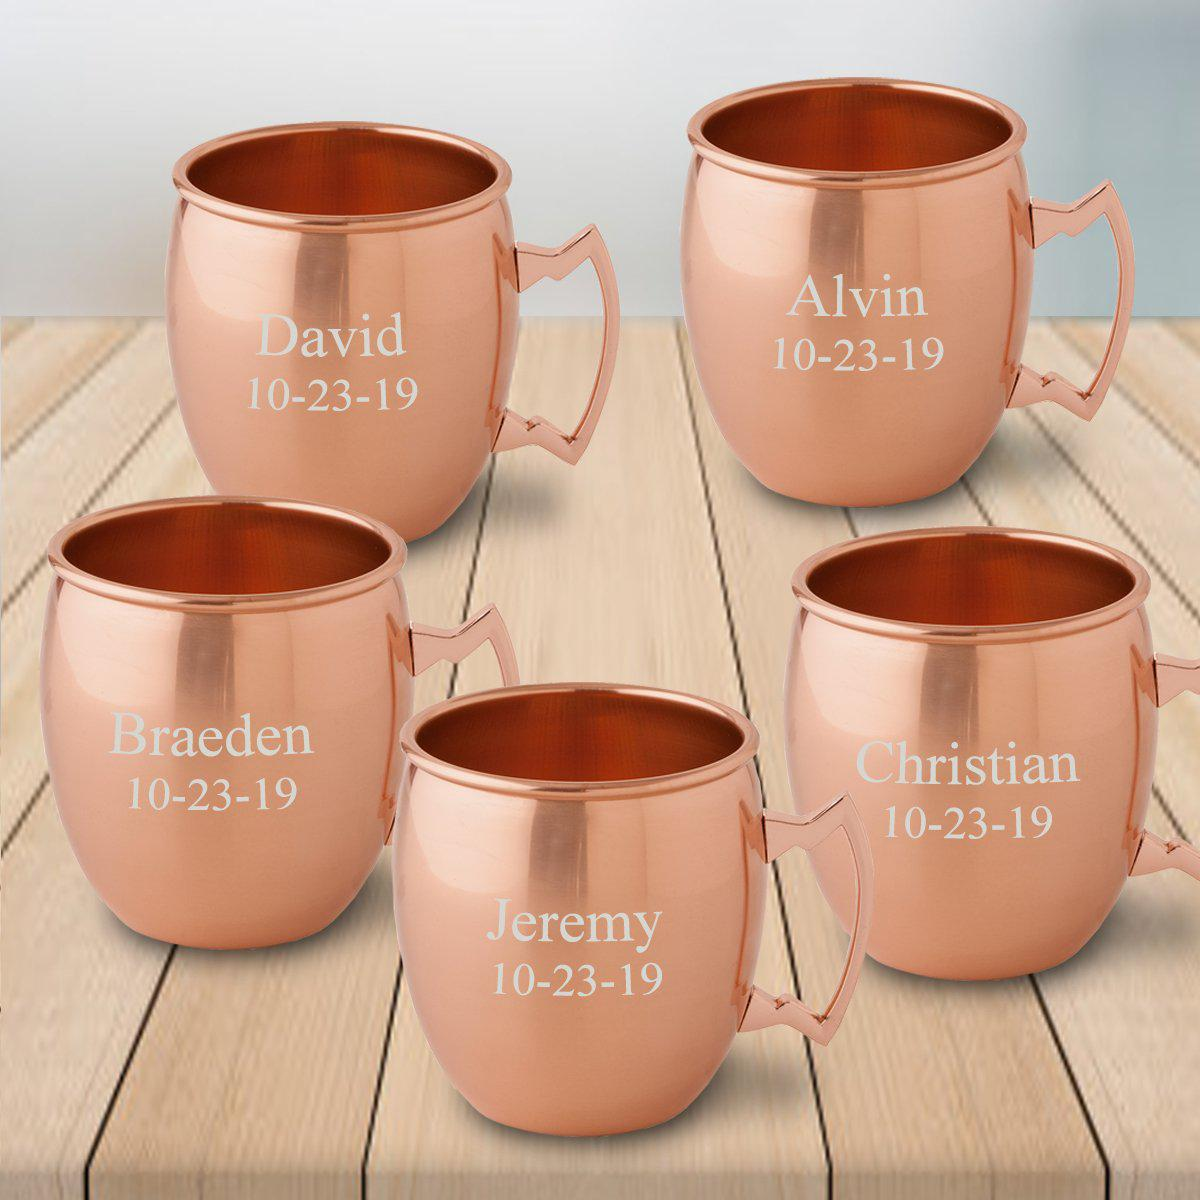 Personalized Gift Set of 5 Moscow Mule Mugs - Copper